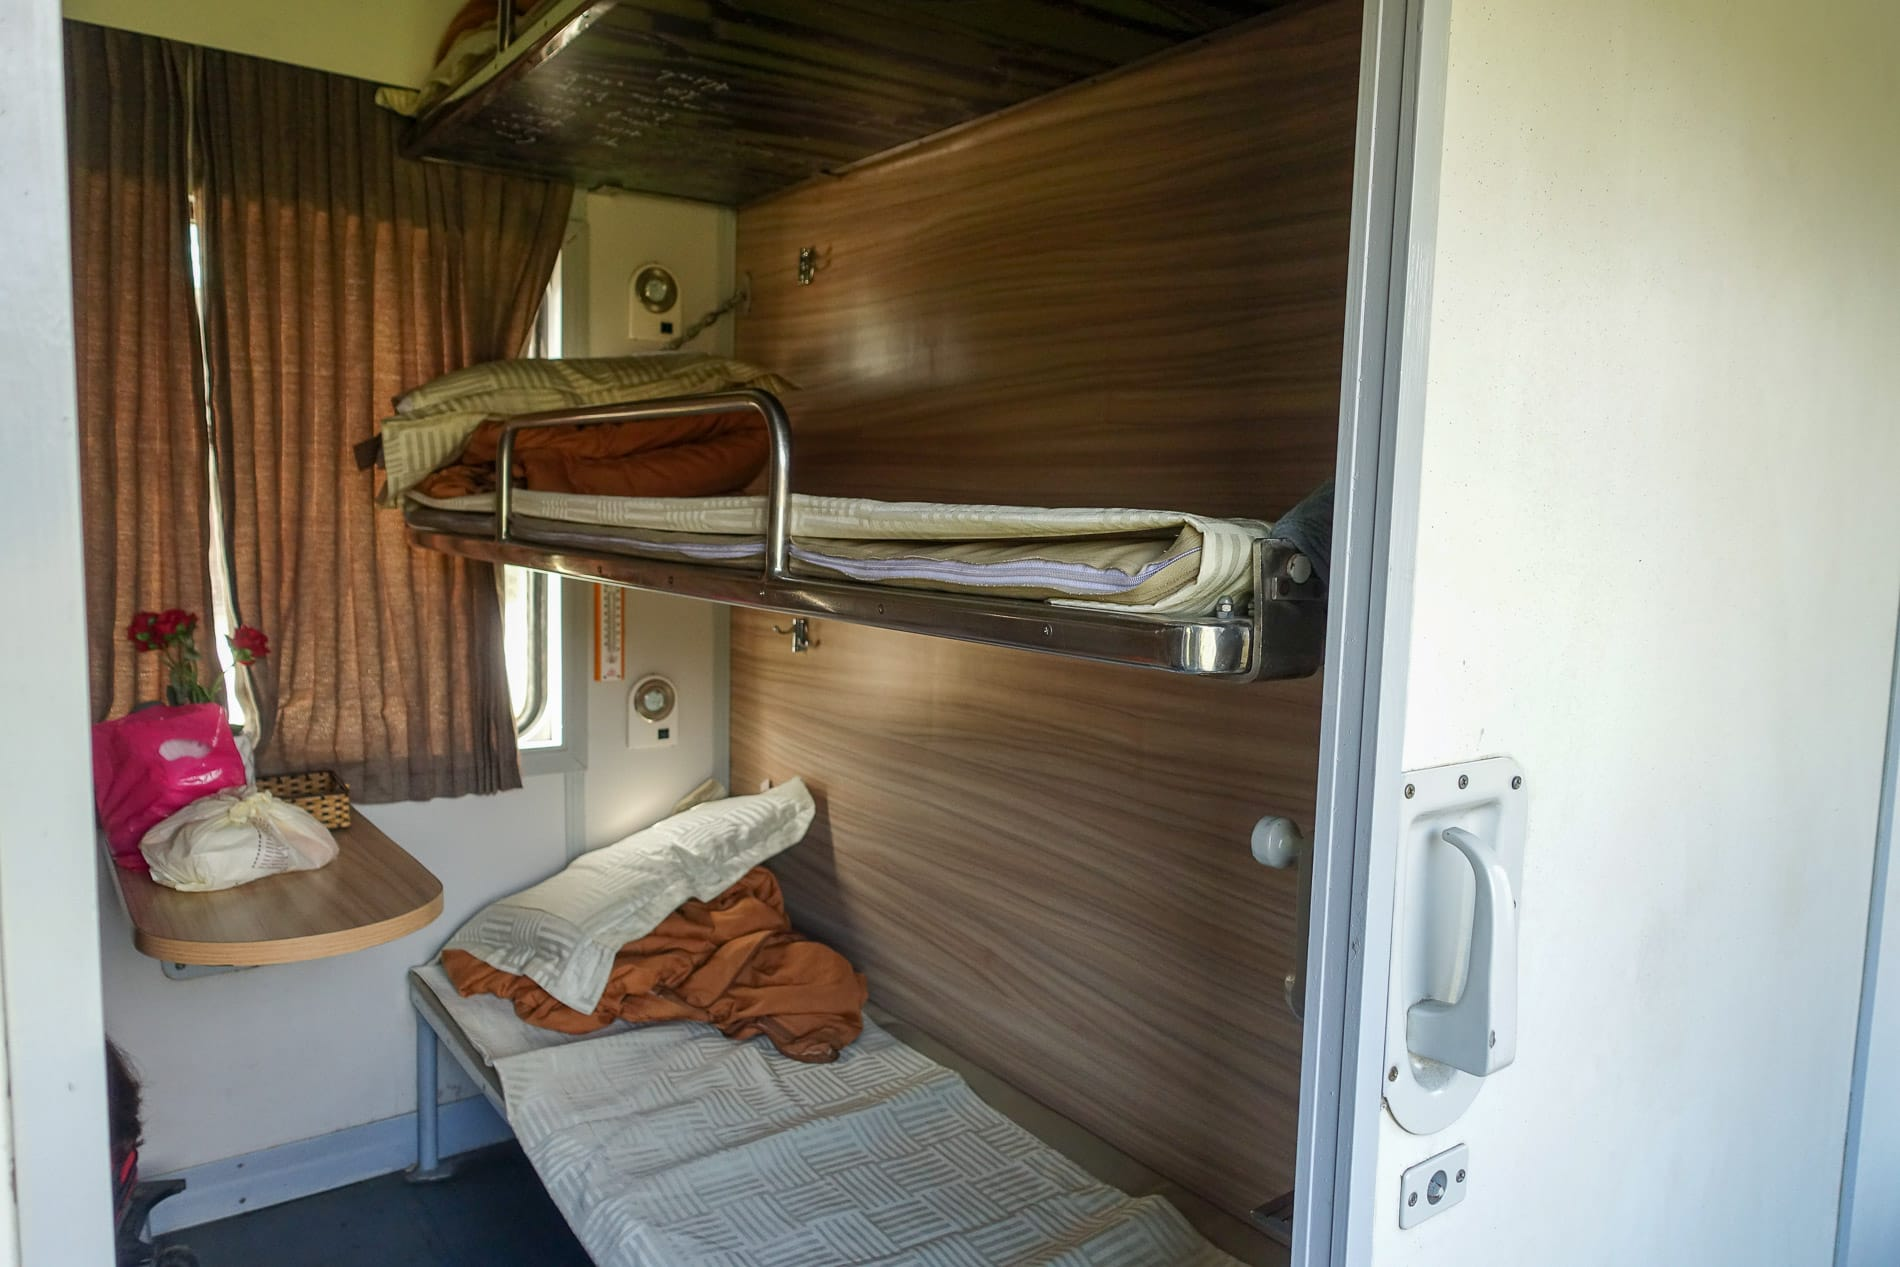 hard sleeper cabin from Hanoi to Da Nang